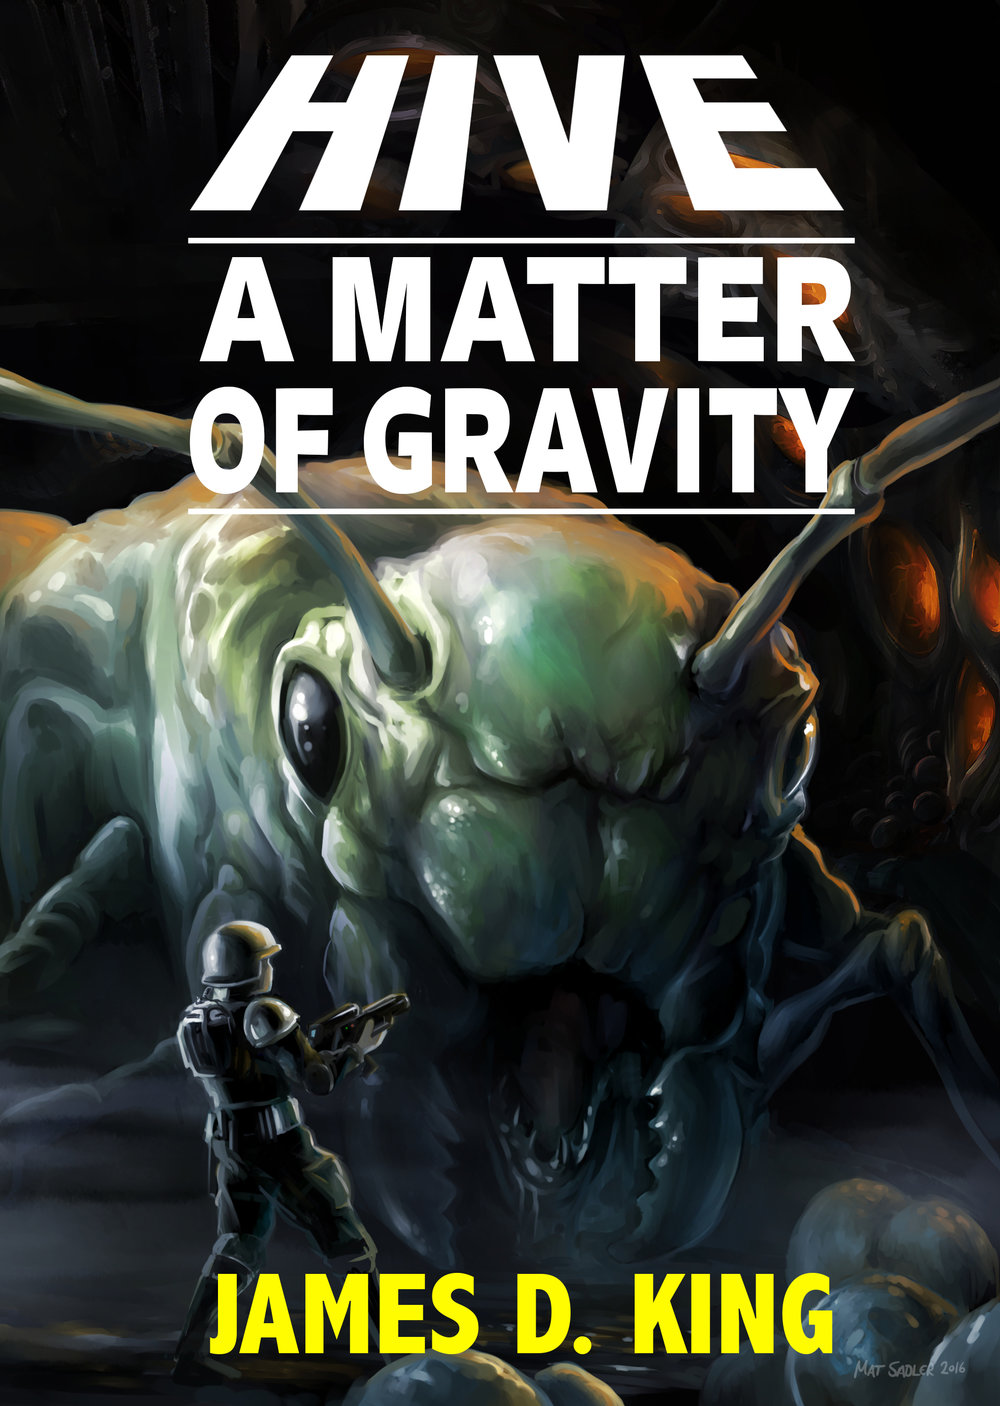 HIVE: A Matter of Gravity by James D. King  COMING SOON to the  aois21 Media Marketplac e